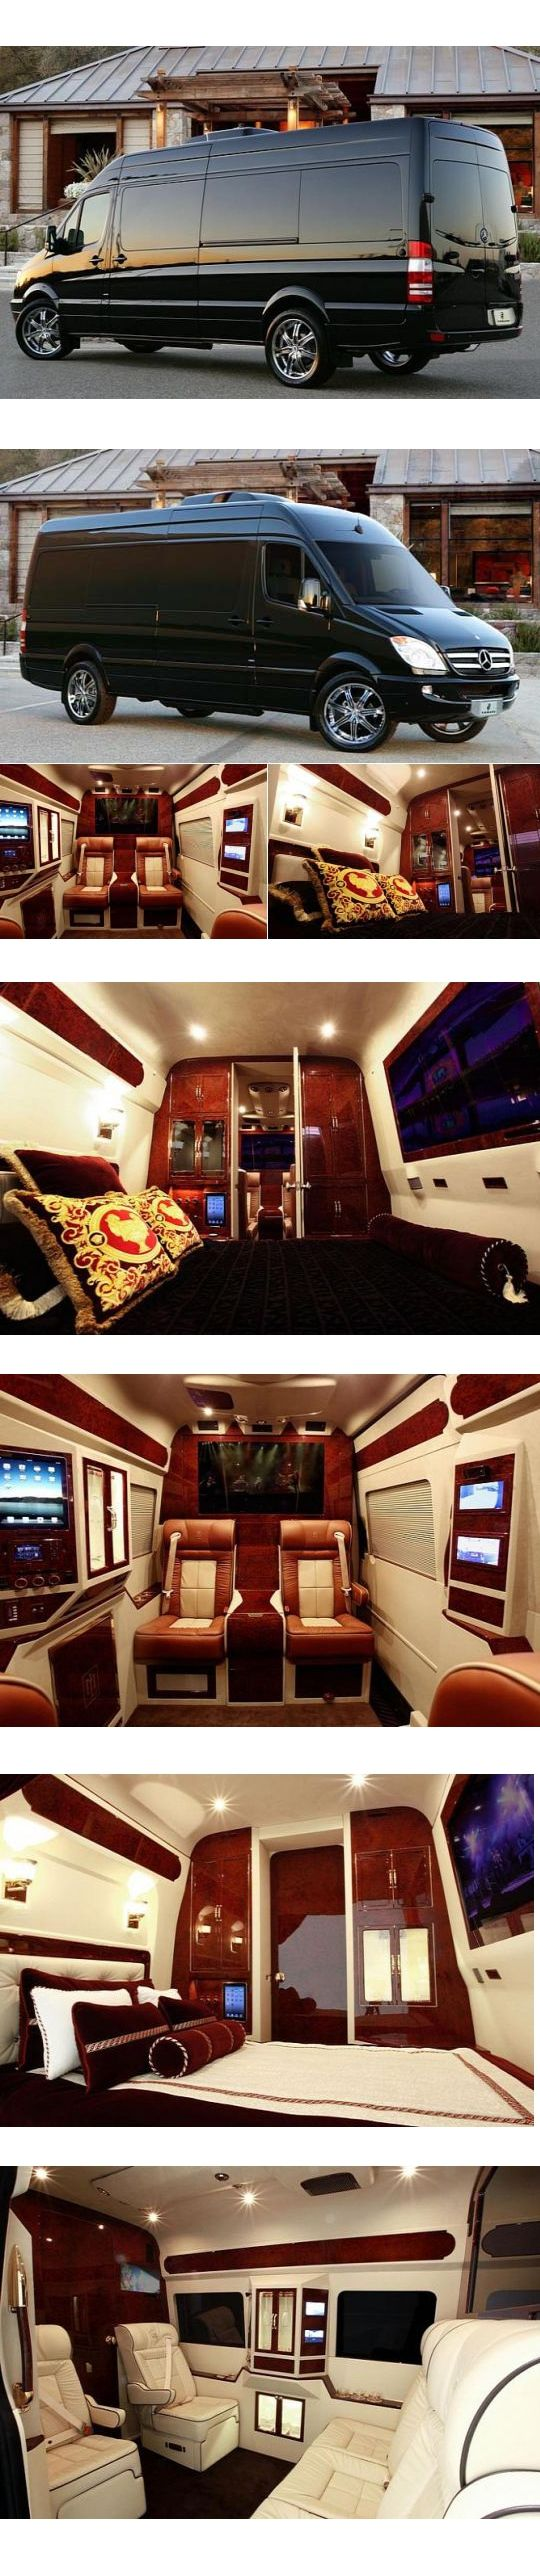 $300,000 Mercedes Sprinter Van by Lexani Motorcars boasts a full-sized luxury bedroom